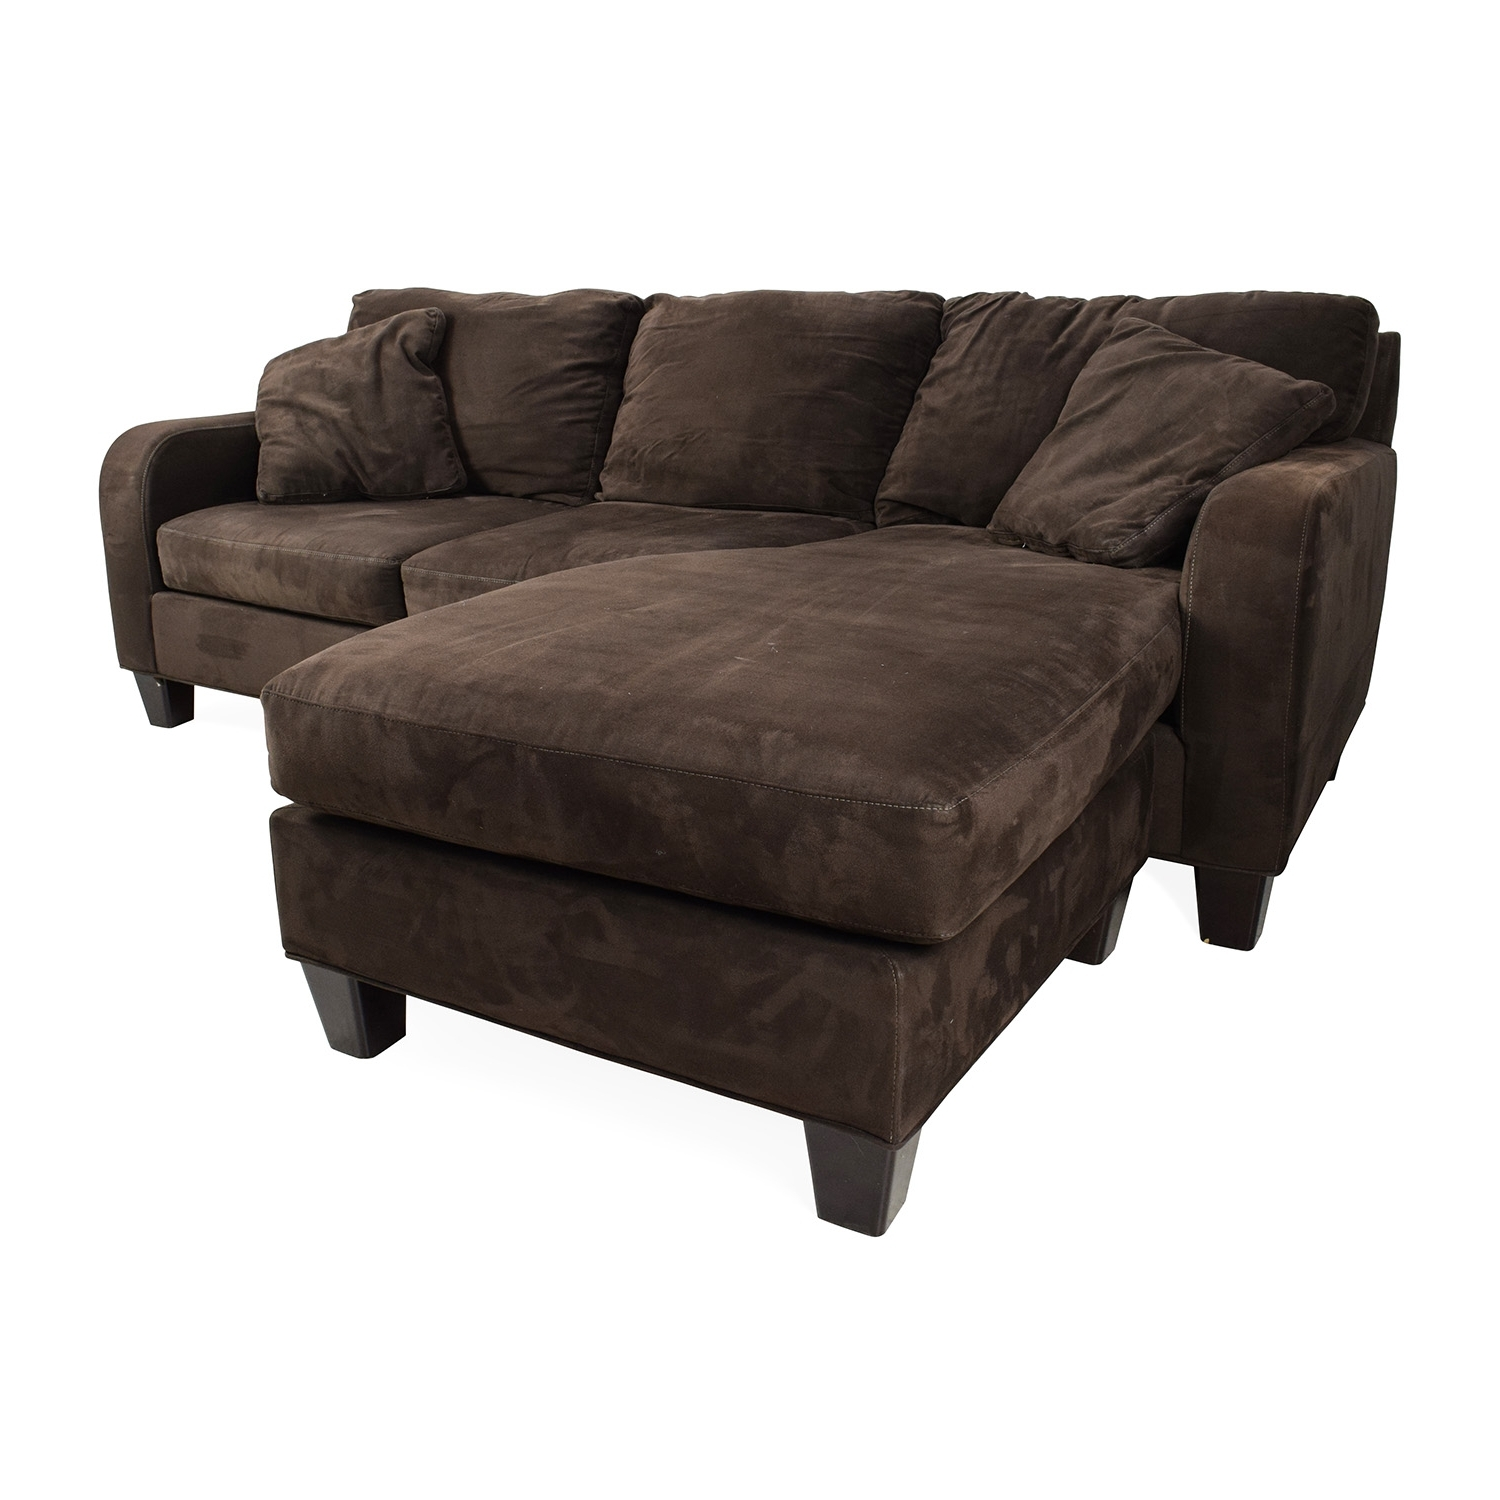 [%70% Off – Cindy Crawford Home Cindy Crawford Bailey Microfiber For Well Known Cindy Crawford Sofas Cindy Crawford Sofas In Famous 70% Off – Cindy Crawford Home Cindy Crawford Bailey Microfiber Popular Cindy Crawford Sofas Intended For 70% Off – Cindy Crawford Home Cindy Crawford Bailey Microfiber 2019 70% Off – Cindy Crawford Home Cindy Crawford Bailey Microfiber Regarding Cindy Crawford Sofas%] (View 3 of 20)